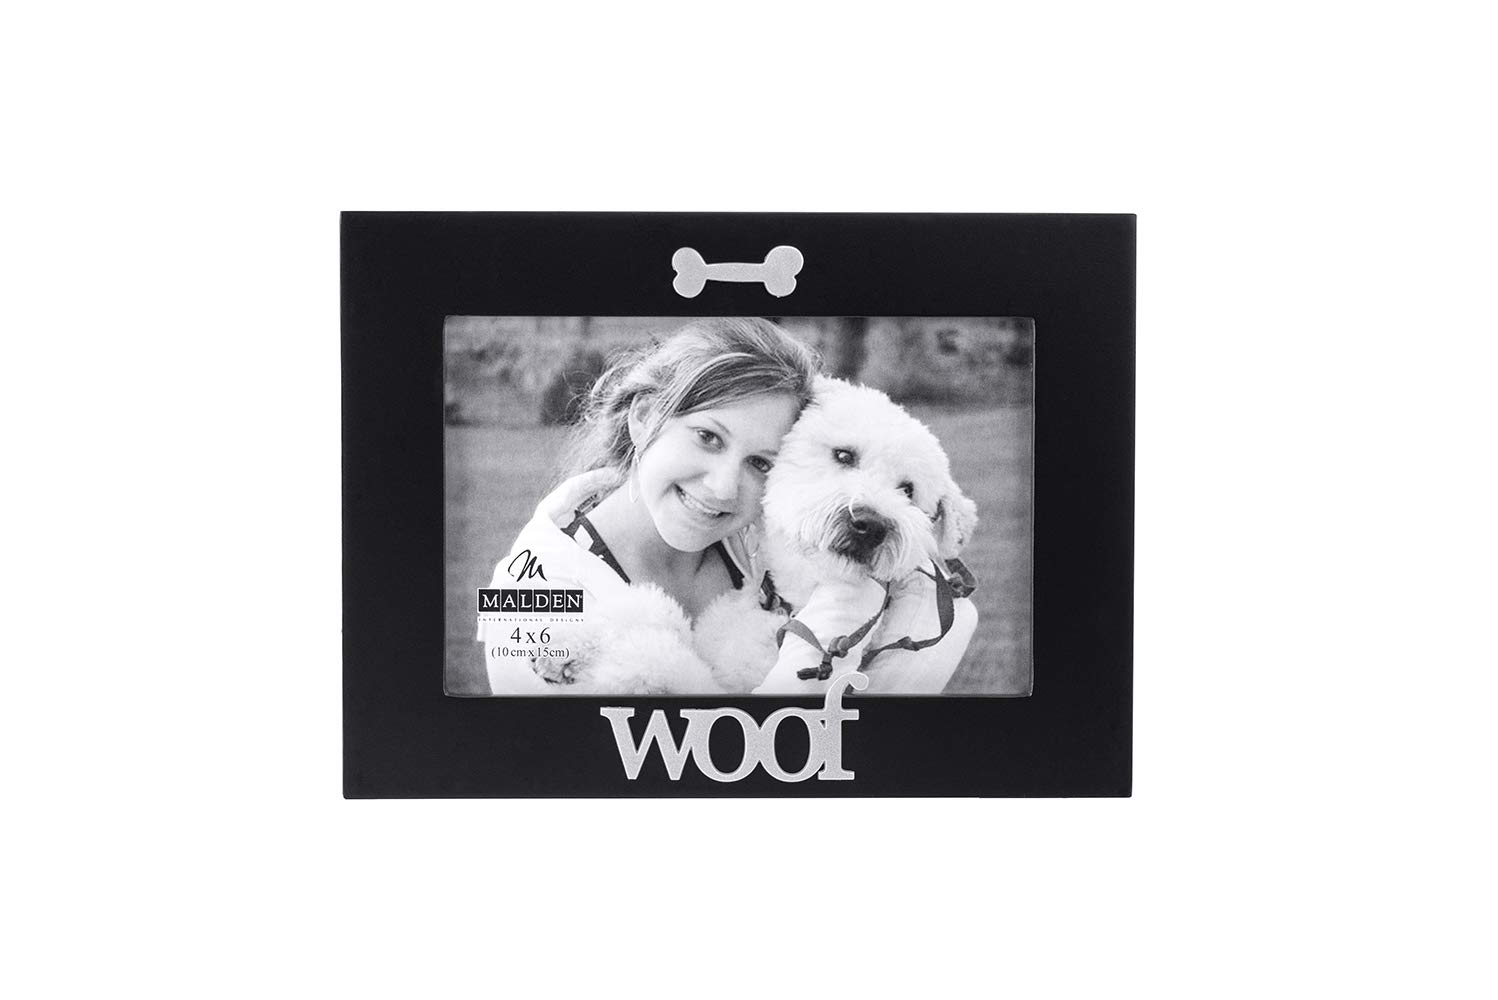 Malden International Designs Black Wood Expression Picture Frame, Woof, 4x6, Black by Malden International Designs